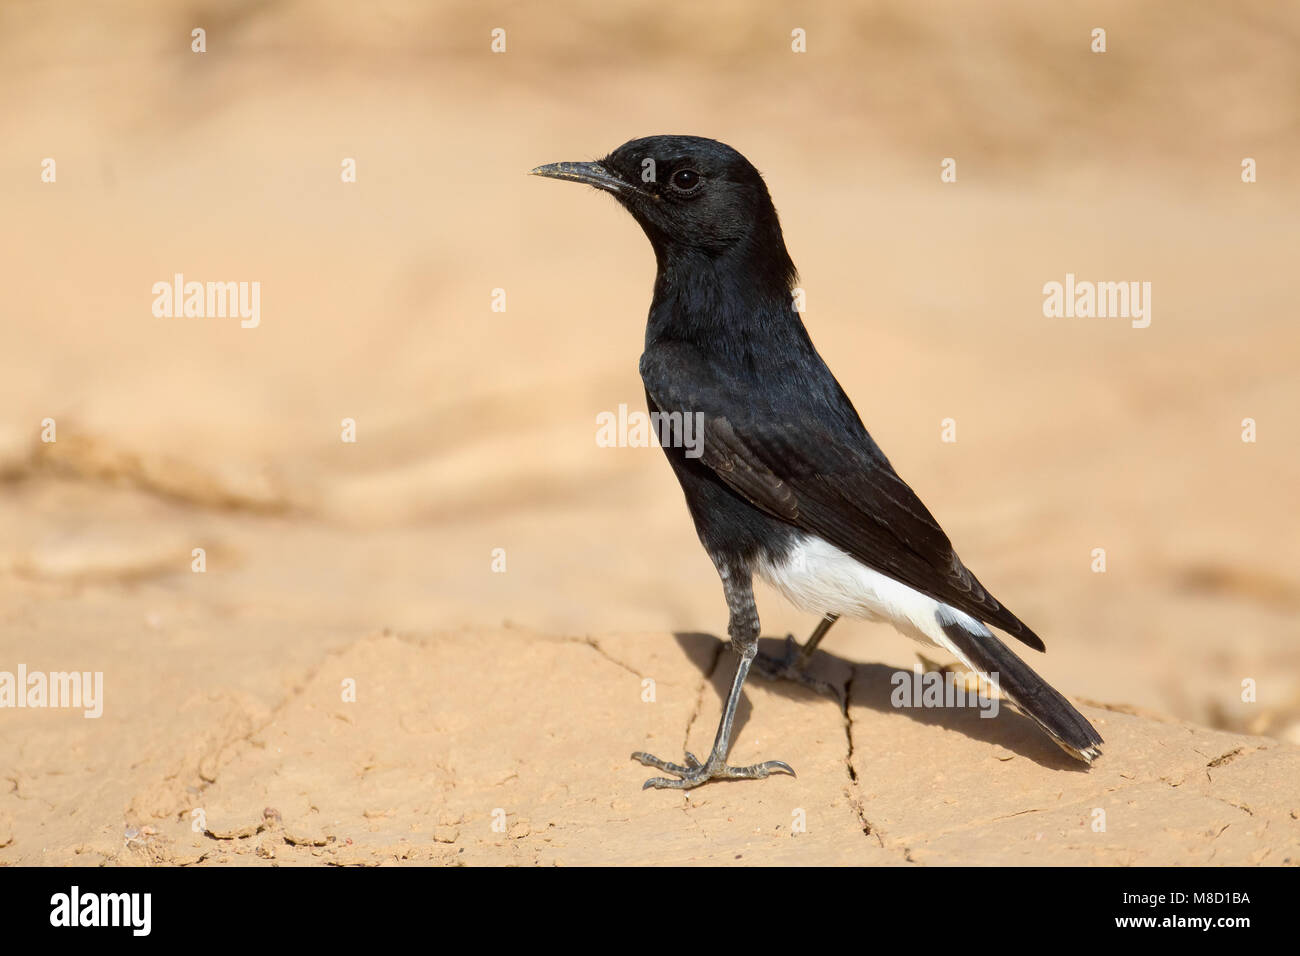 Witkruintapuit in droog habitat; White-crowned Wheatear in dry habitat - Stock Image